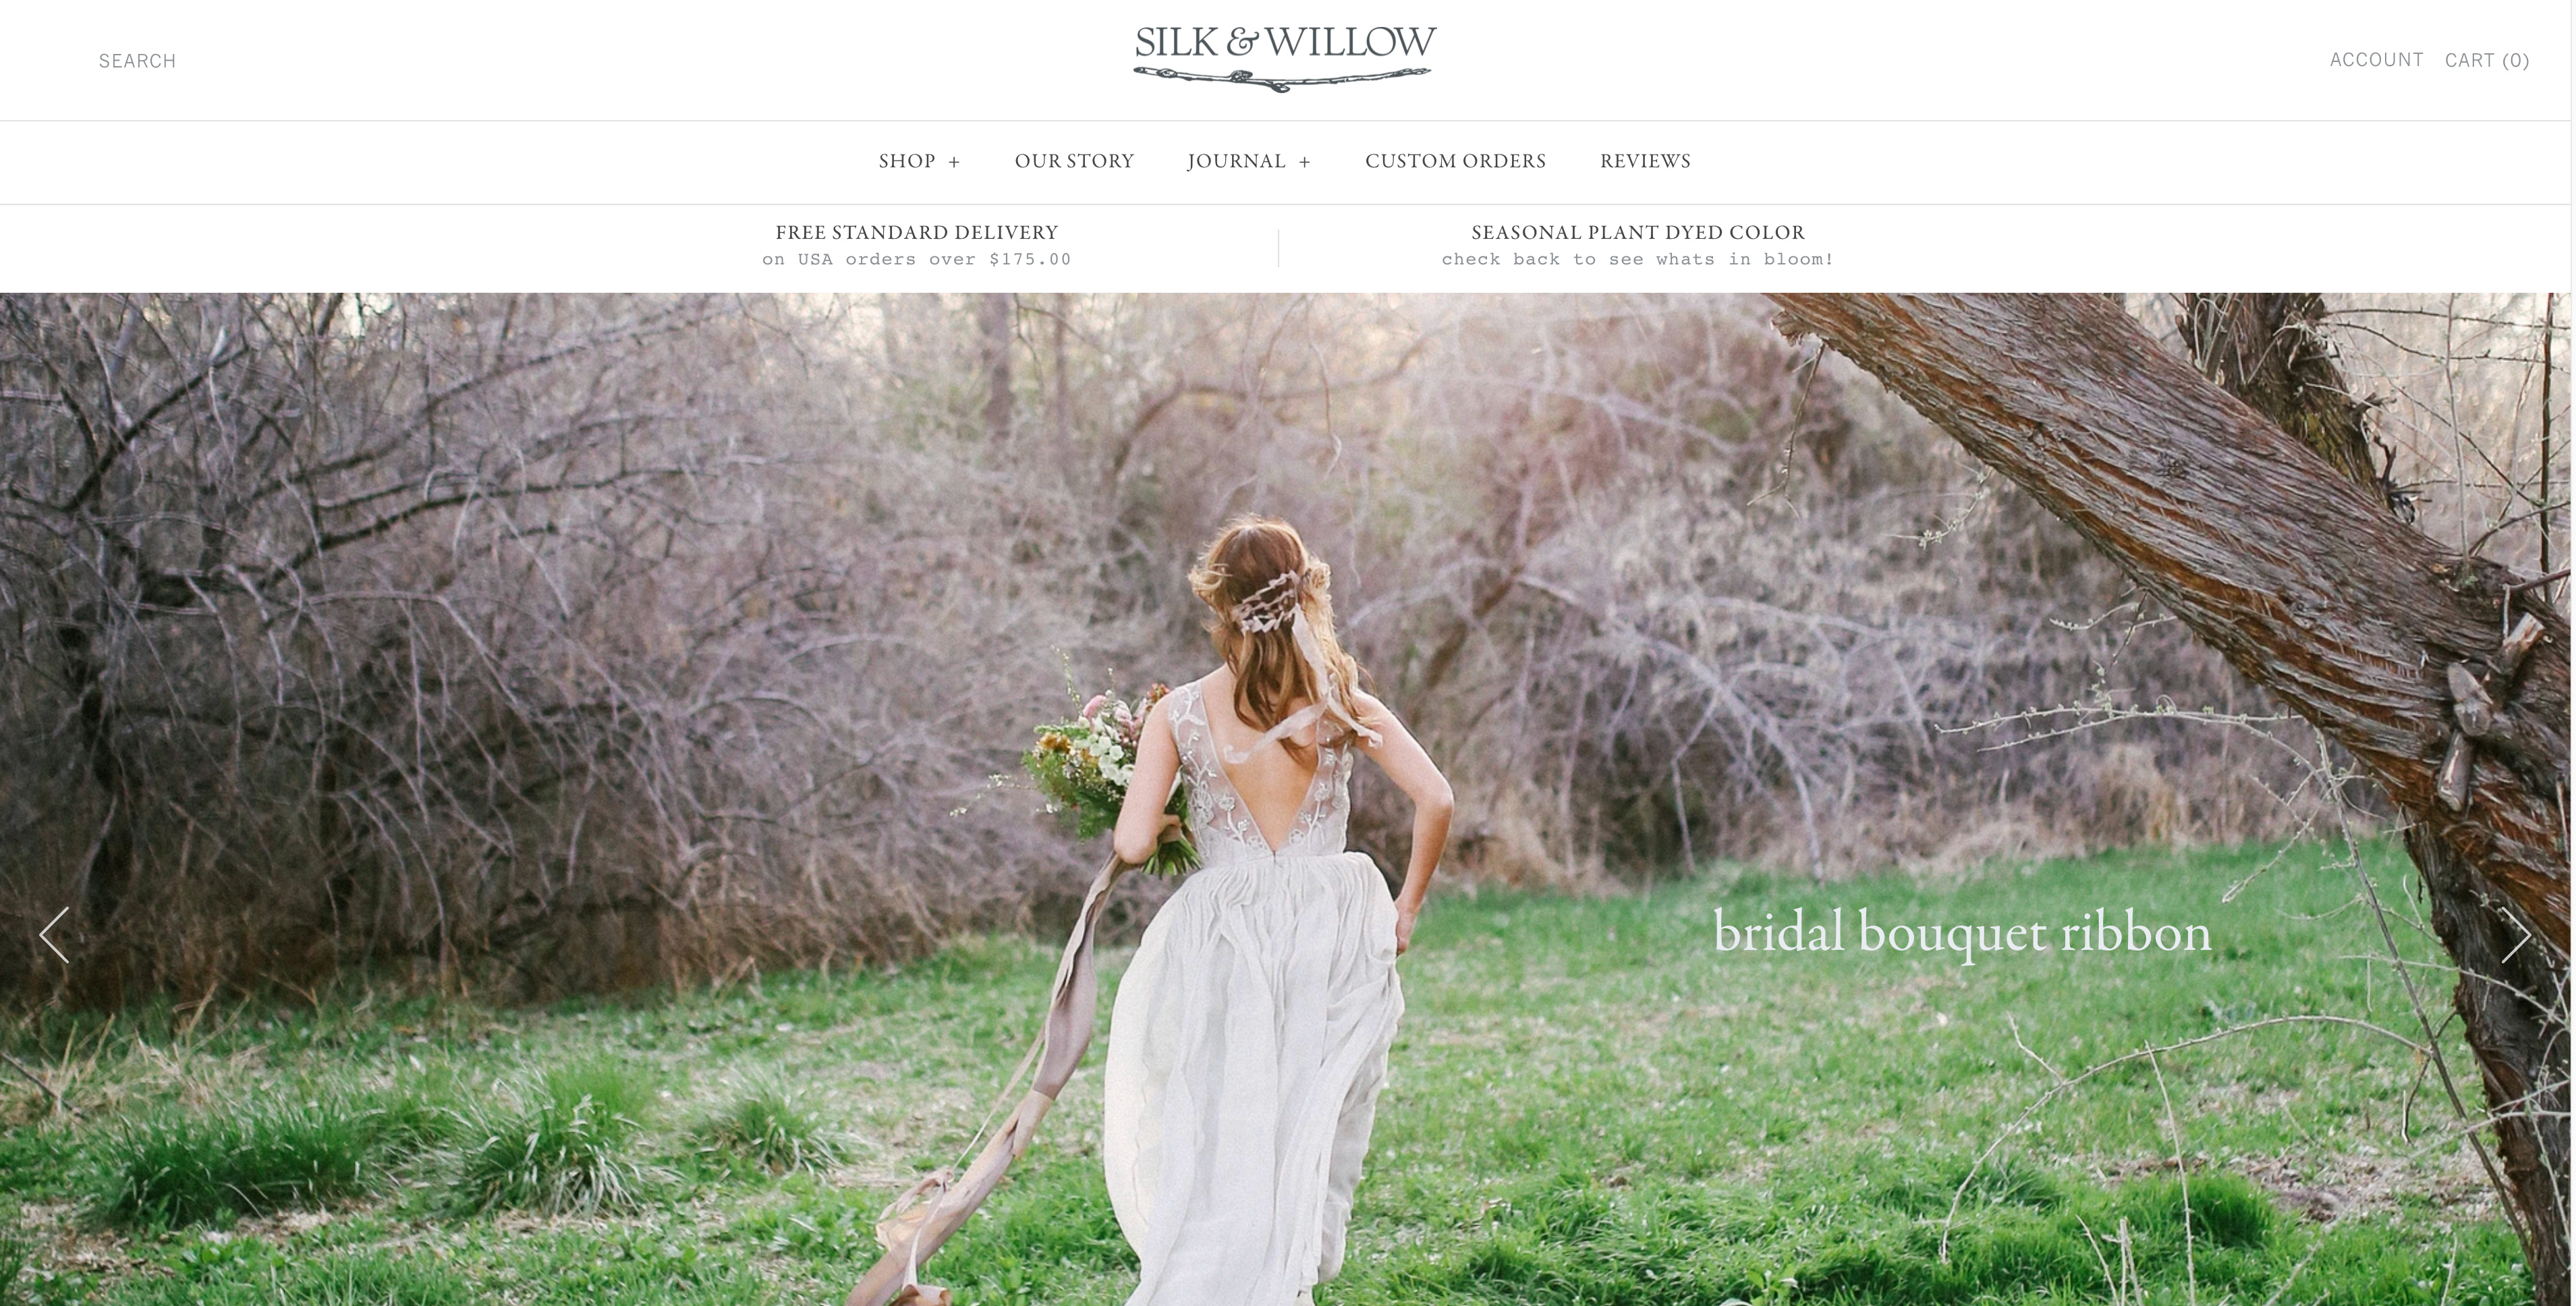 Screenshot of Silk and Willow's online store.